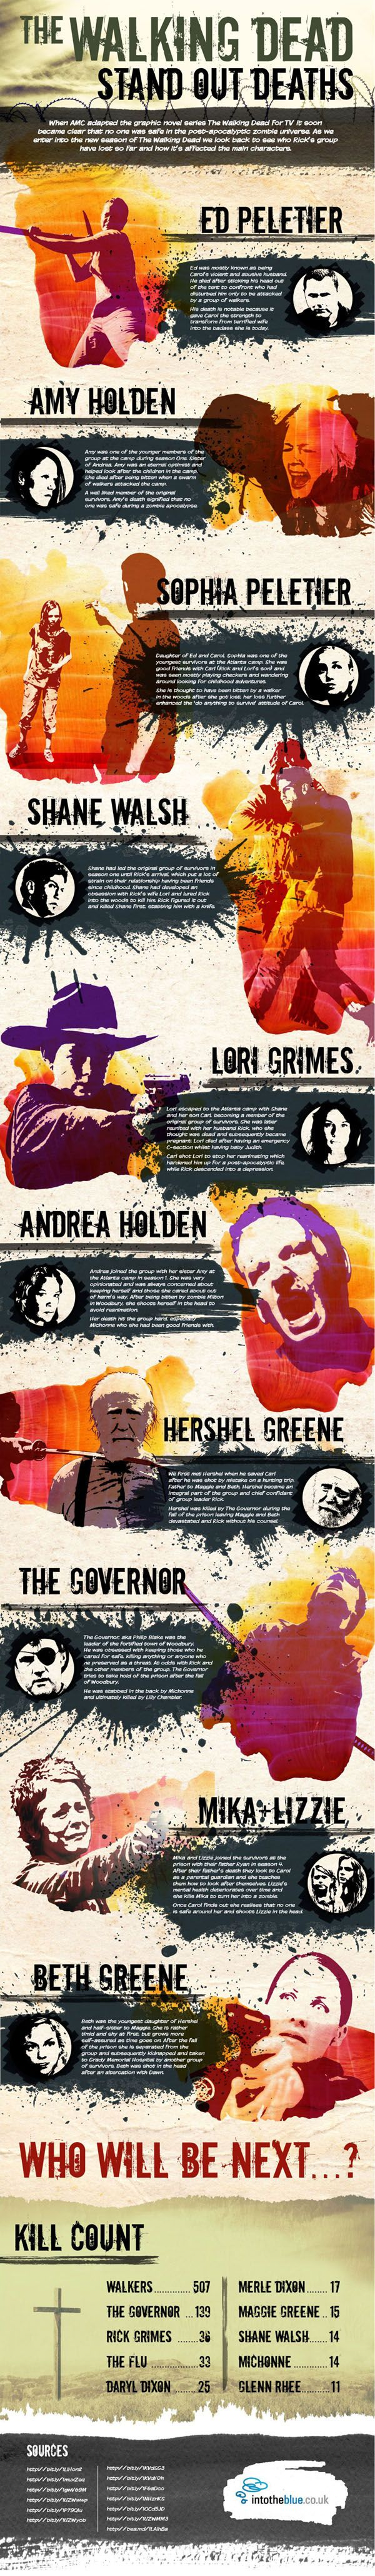 'The Walking Dead' infographic: 10 of the best deaths (Spoiler Warning for seasons 1-5) REST IN PEACE BETH,HERSHEL,ANDREA,AMY,SOPHIA